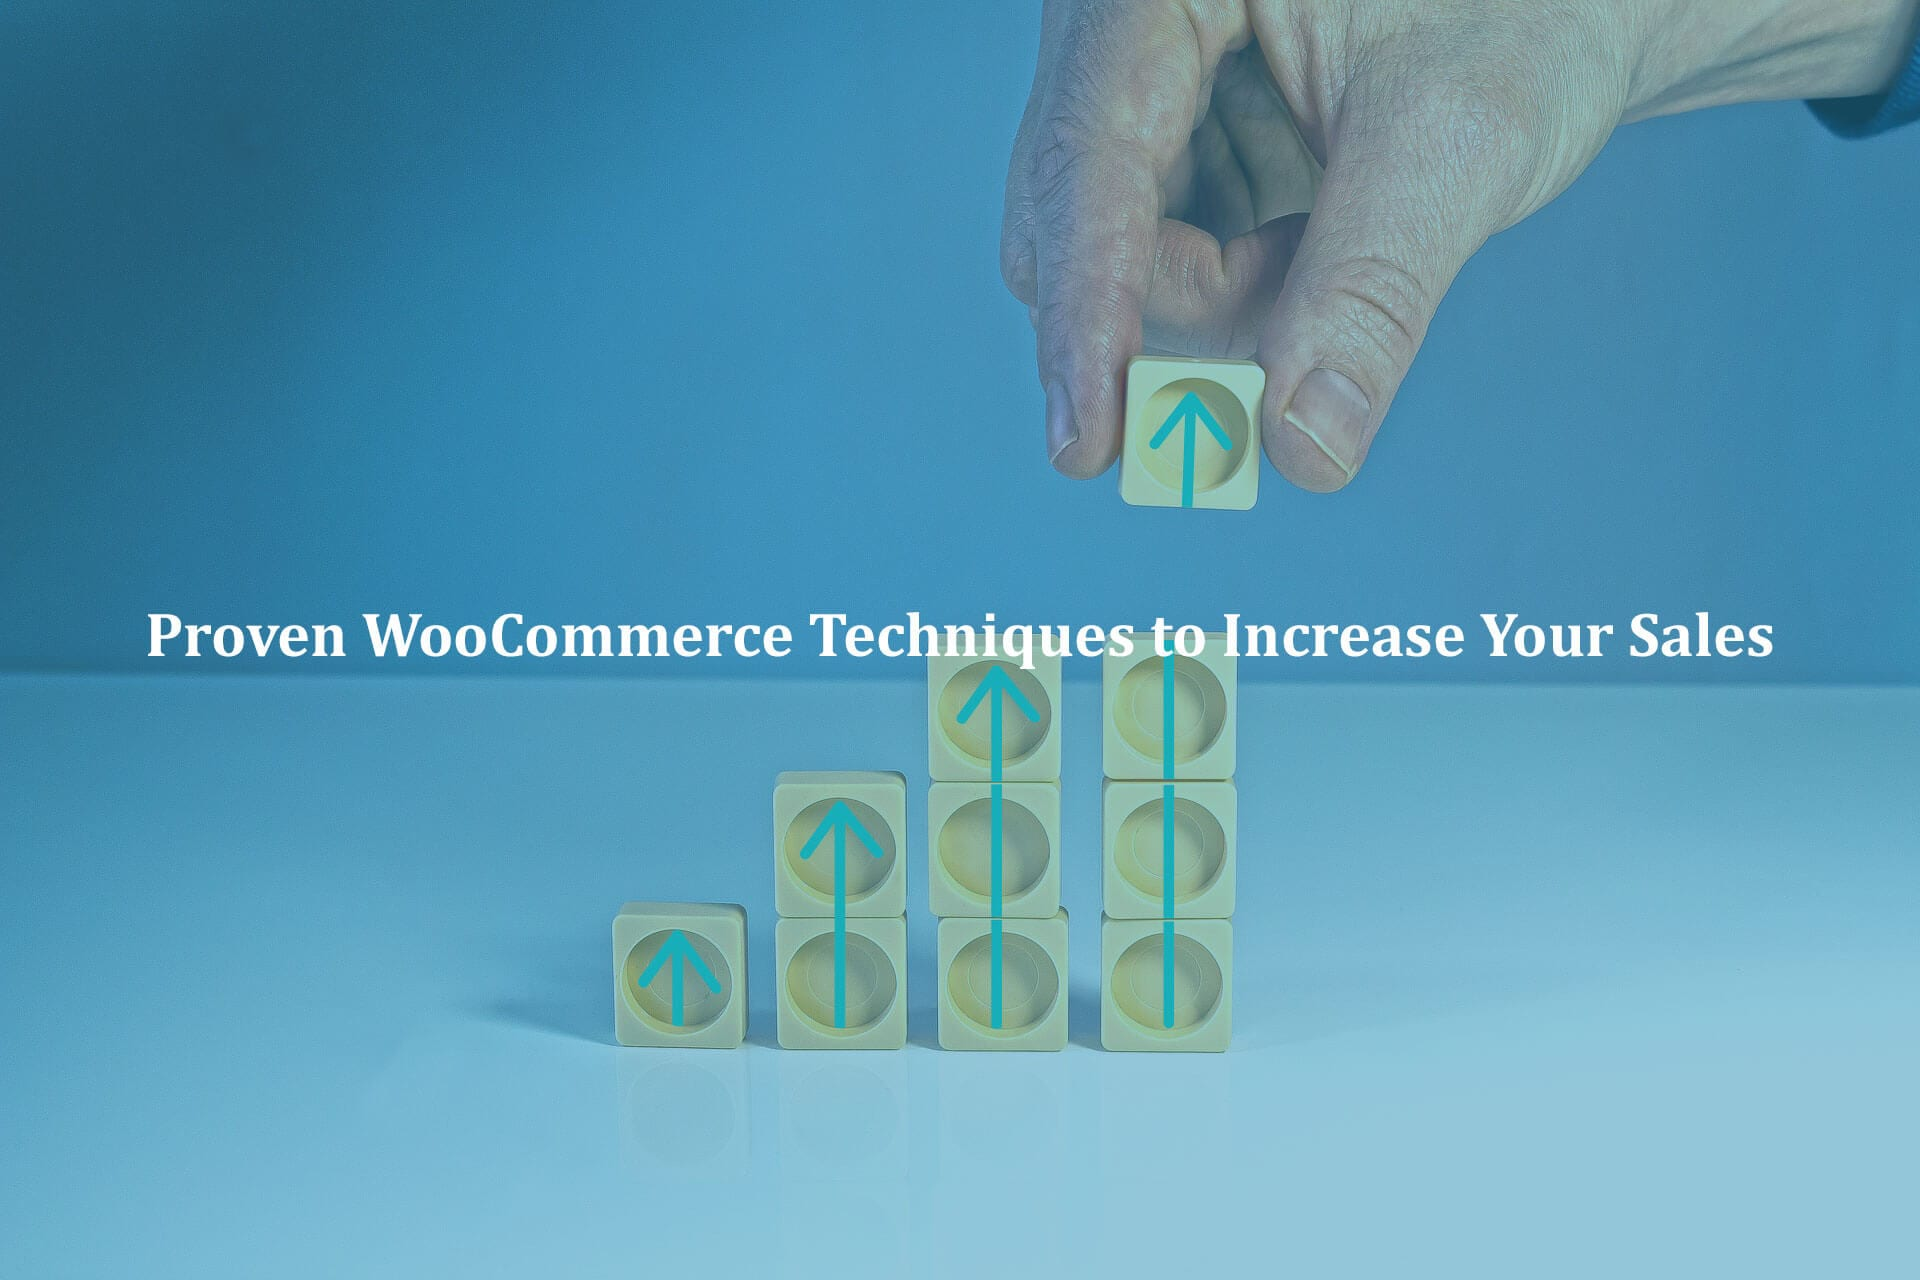 Proven-WooCommerce-Techniques-to-Increase-Your-Sales